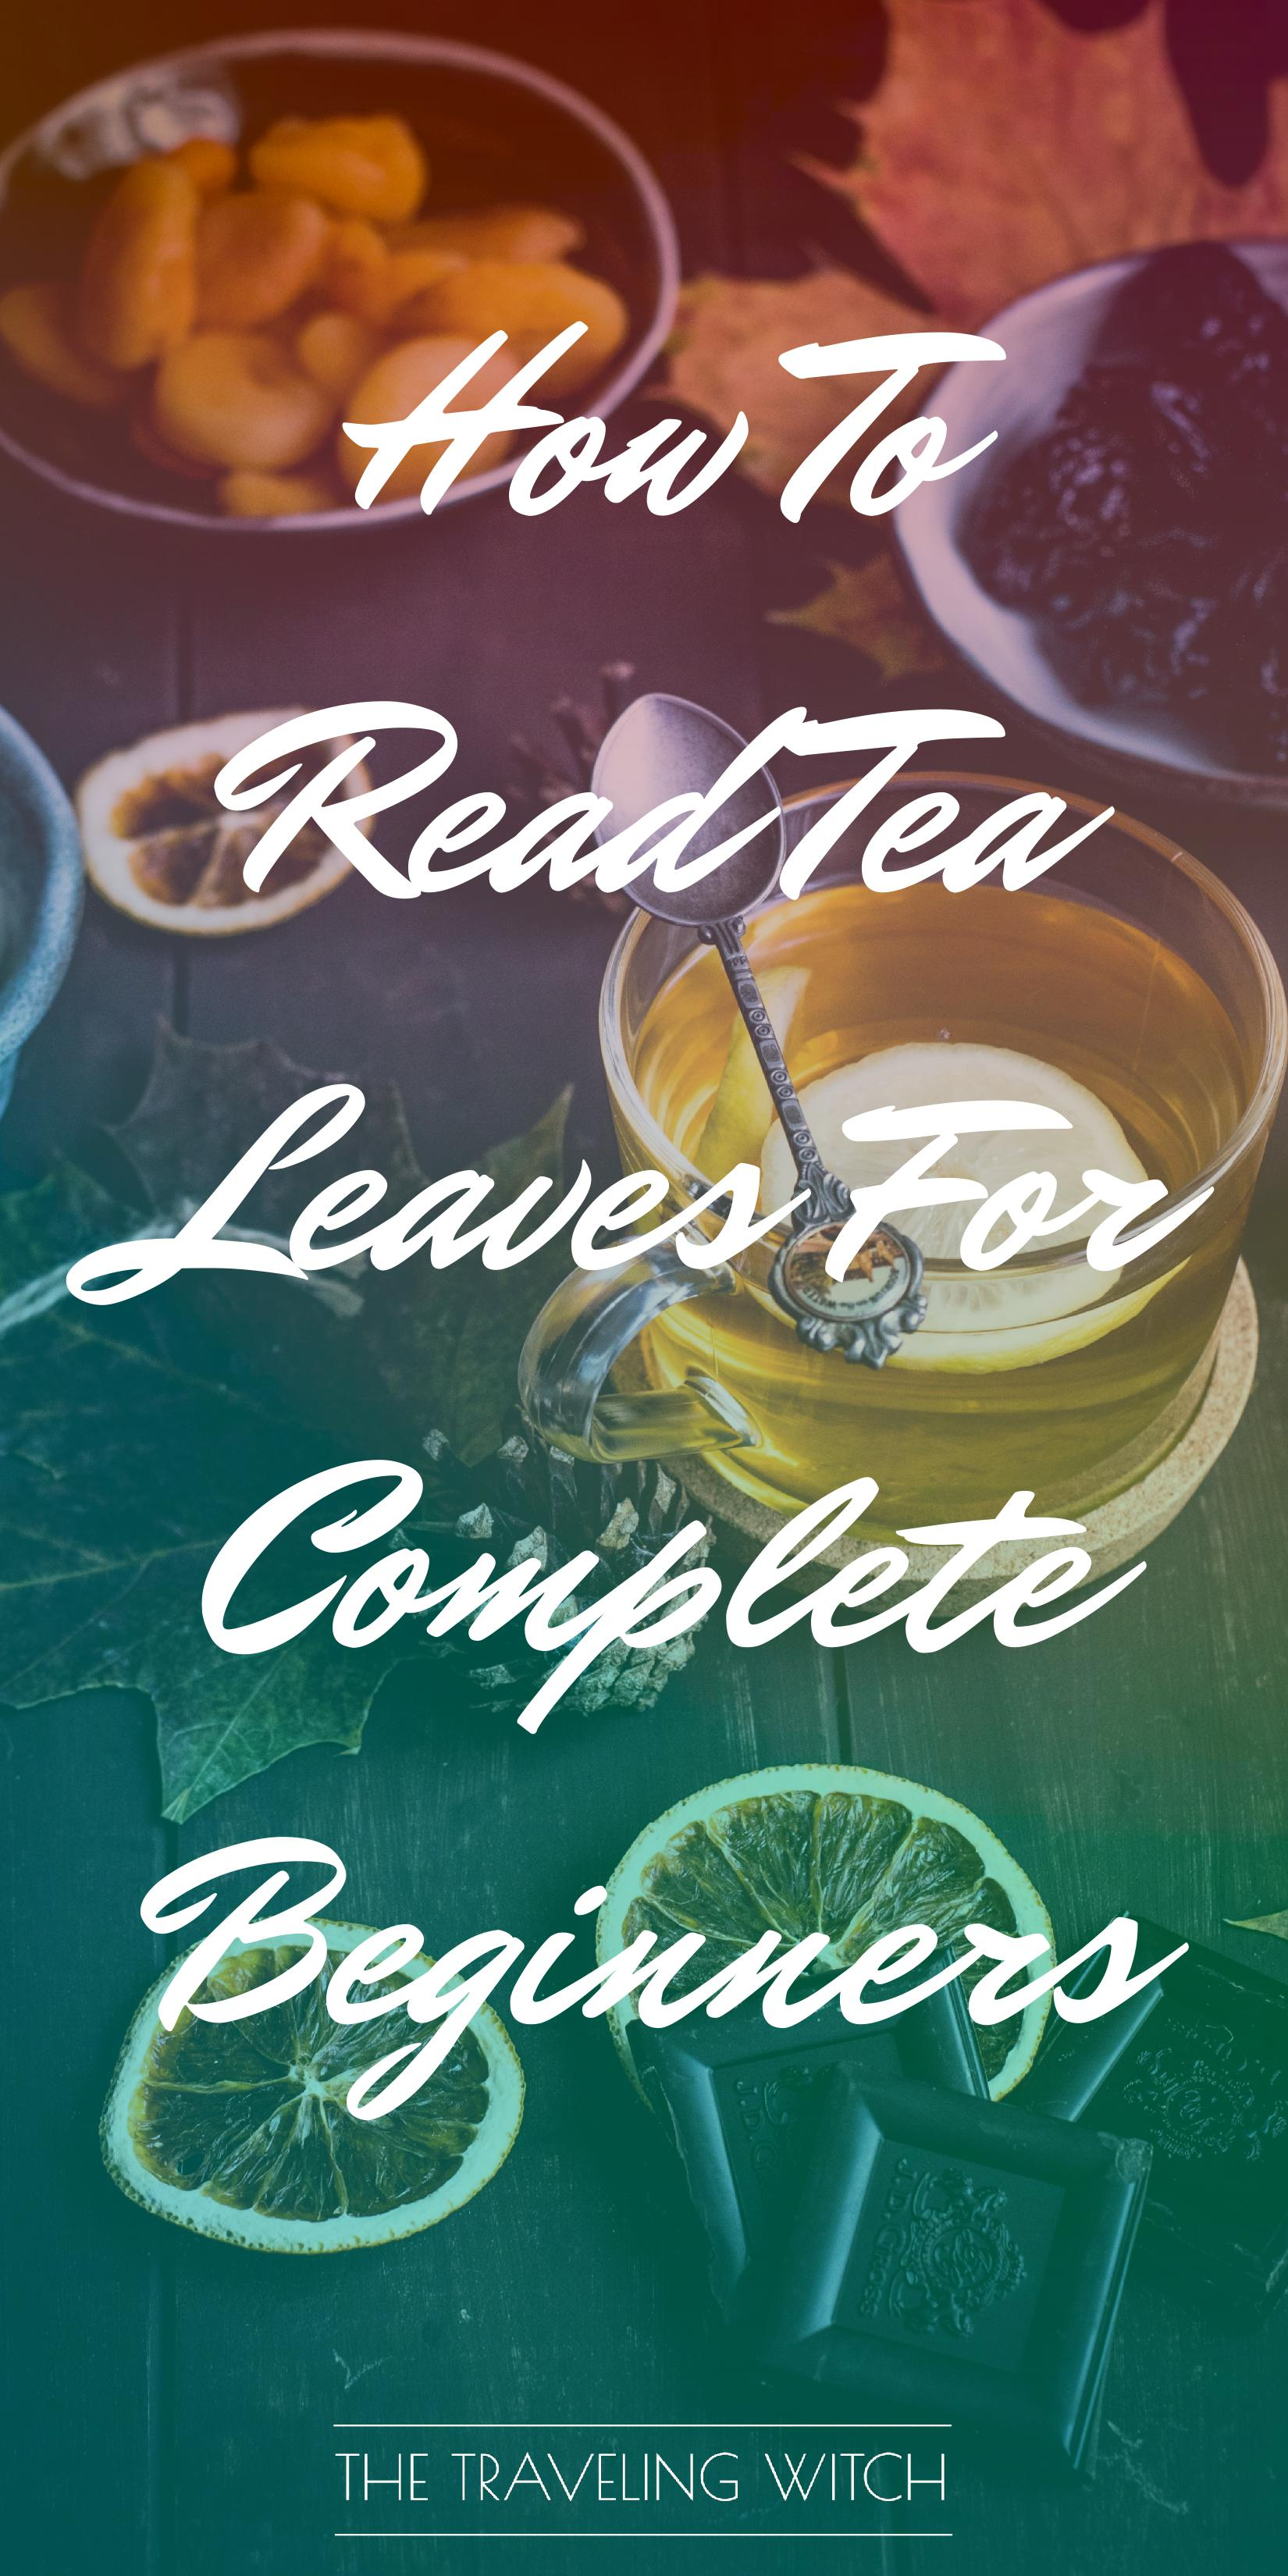 How To Read Tea Leaves For Complete Beginners by The Traveling Witch